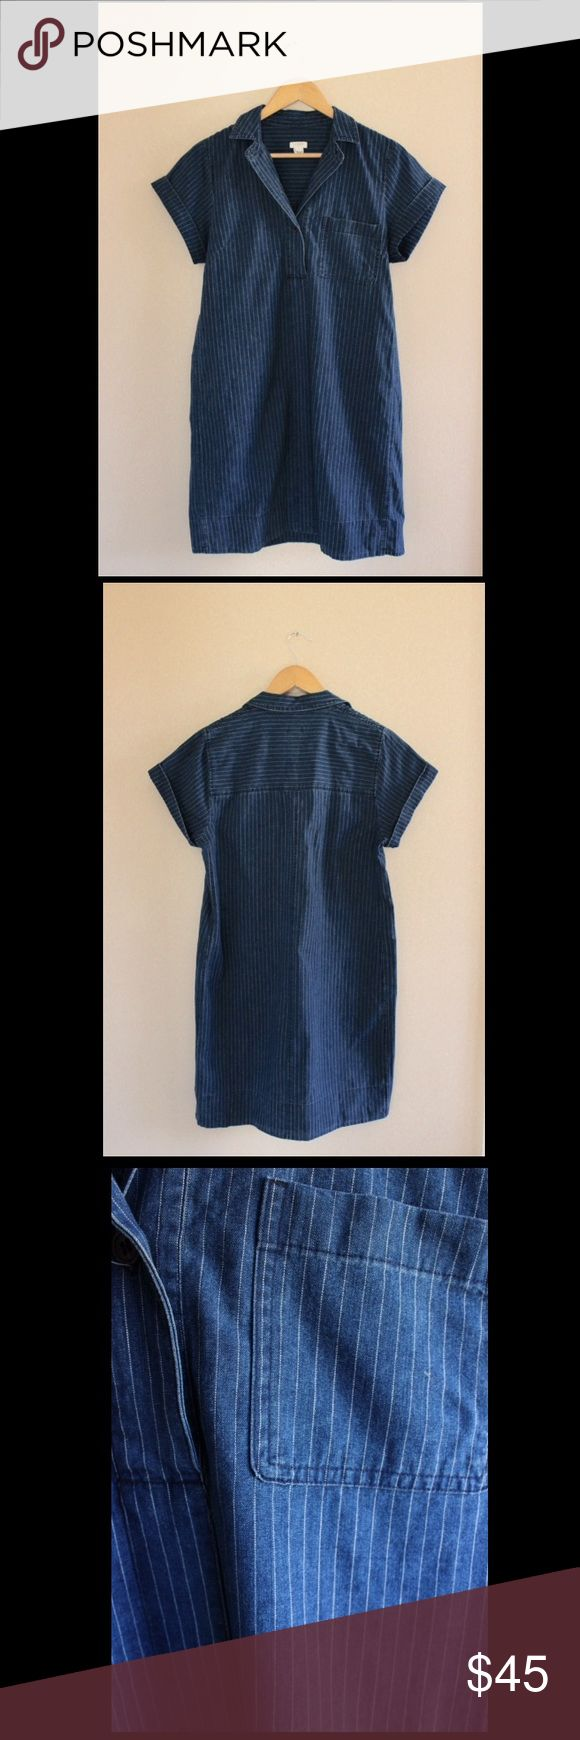 JCrew Chambray Dress Dark chambray shift dress with white pin stripes, cotton, falls above knee, button closure, chest pocket J. Crew Factory Dresses Mini